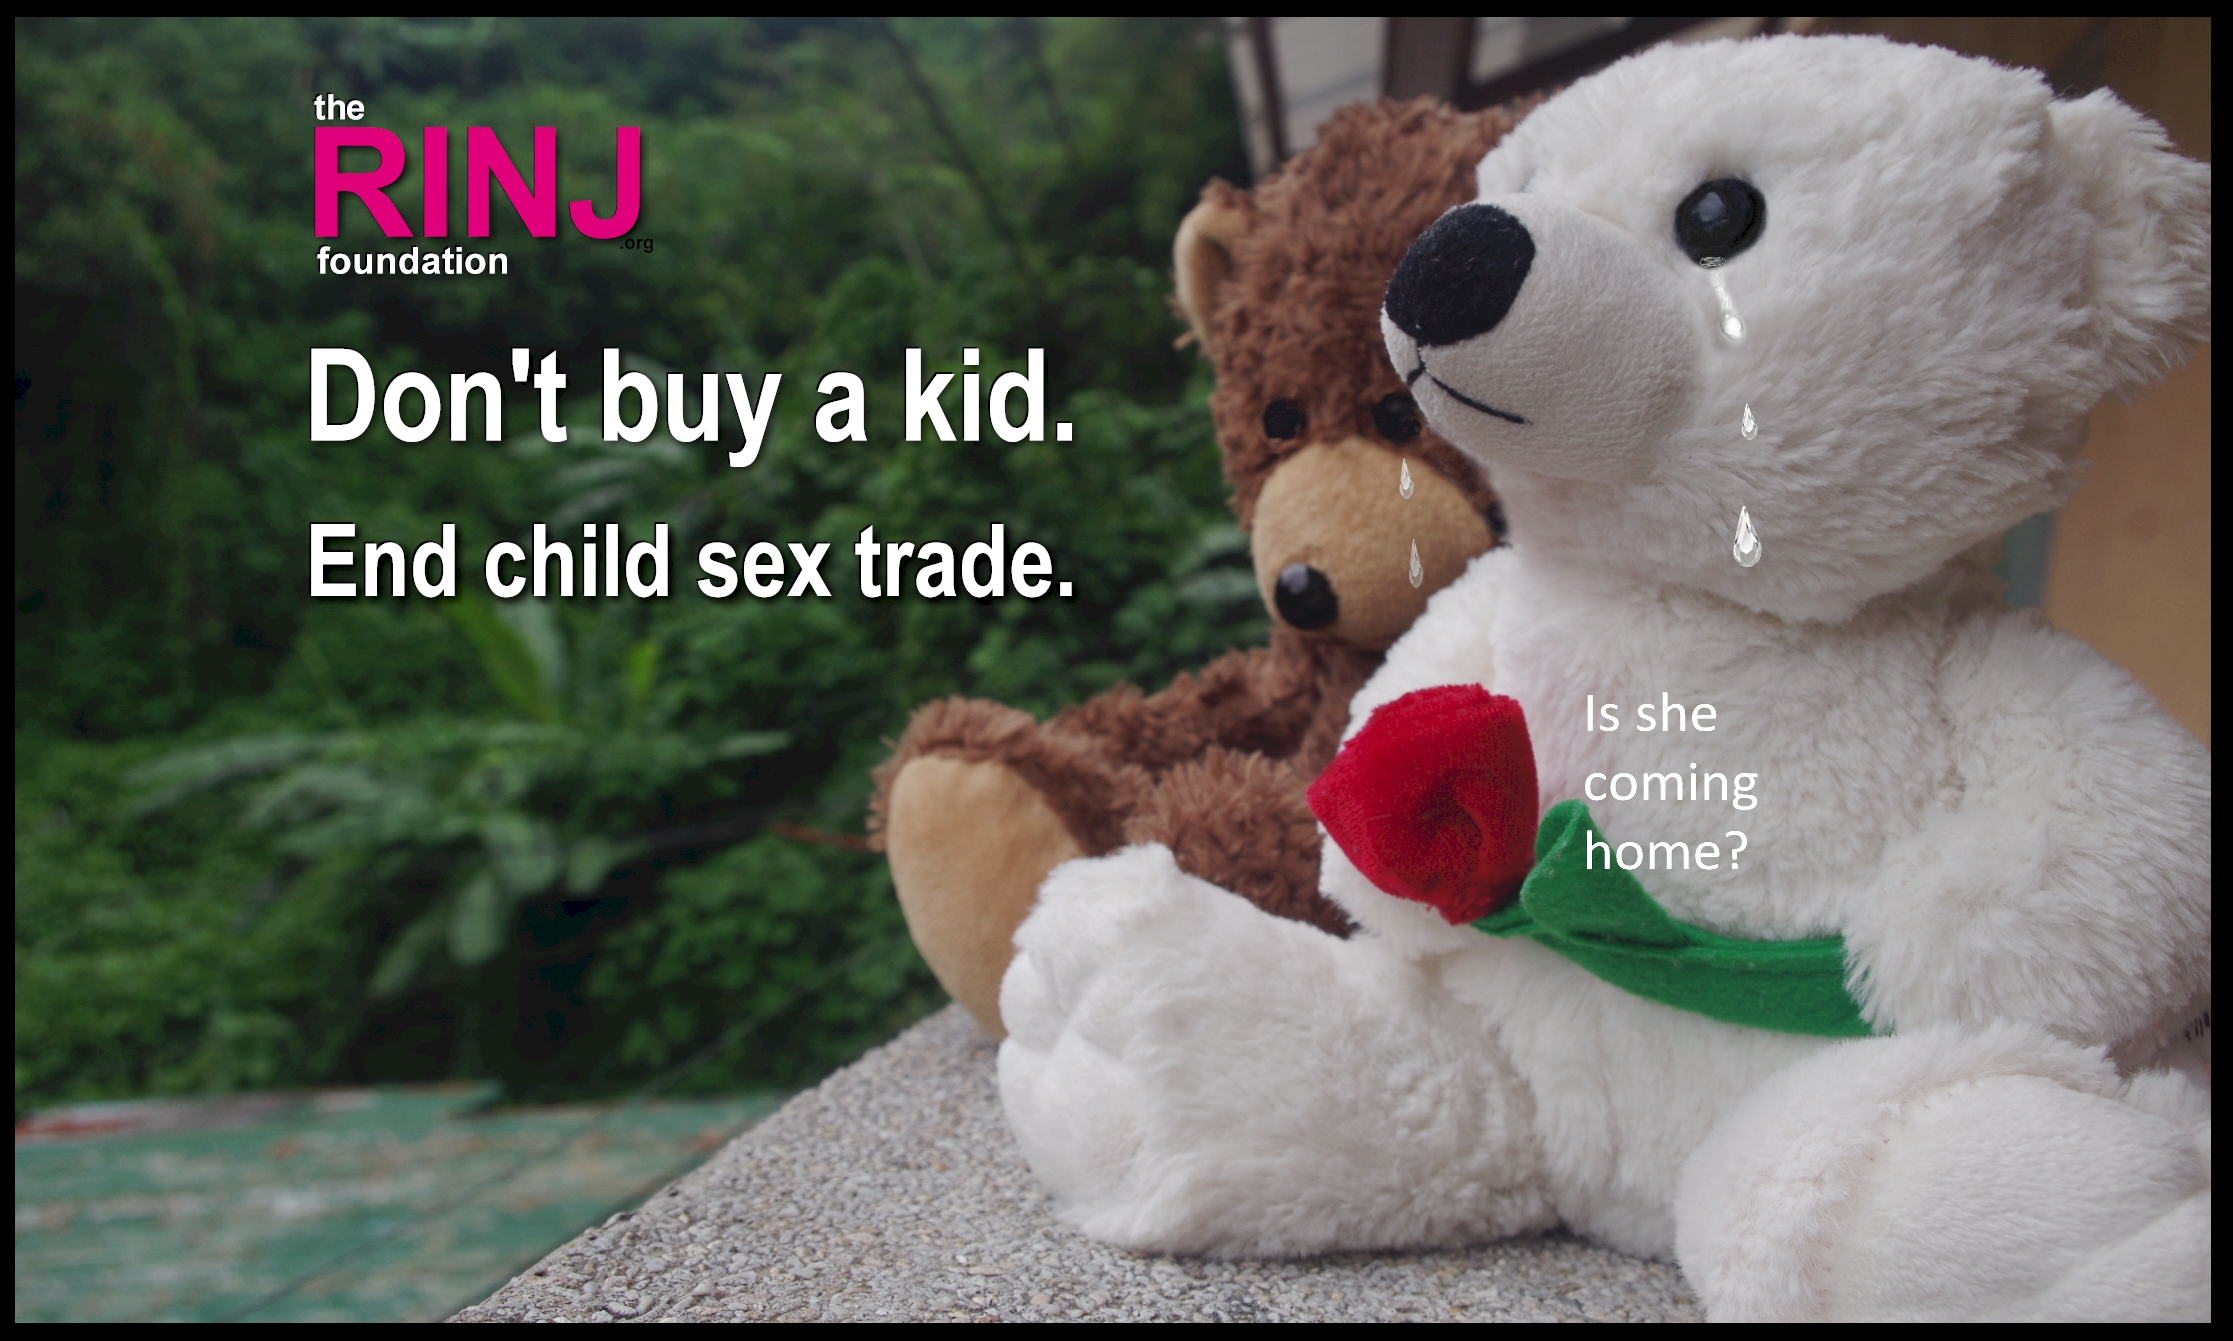 Don't buy a kid. End child sex trade. @rapeisnojoke 2016 - 4th Annual Campaign #DontBuyAKid